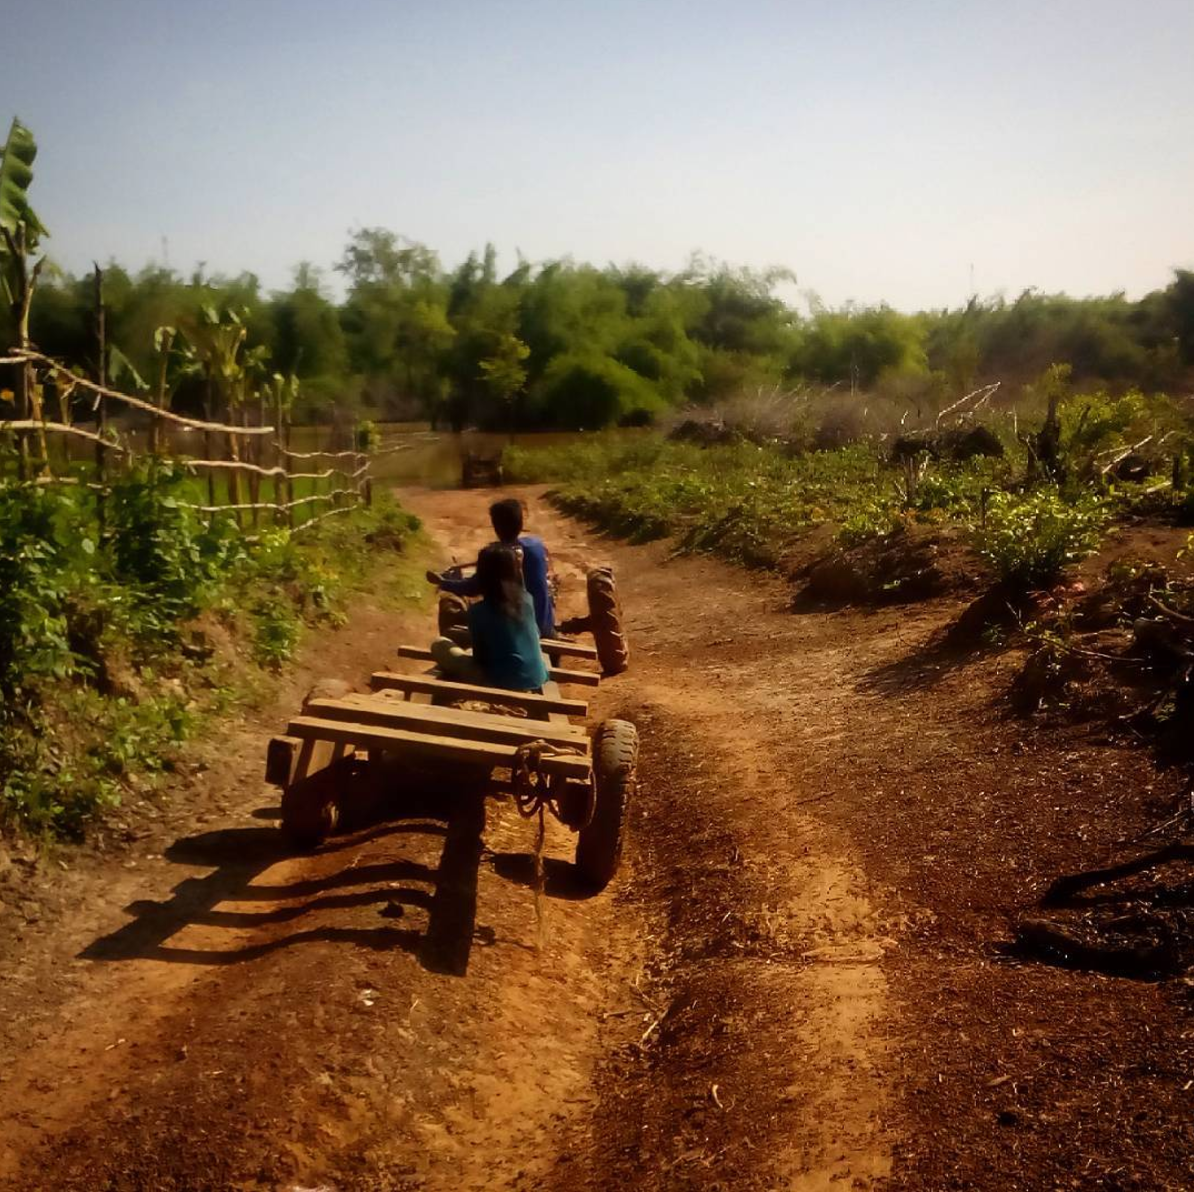 Two Cambodians ride on a tractor outside of Preah Vihear from Into Foreign Lands